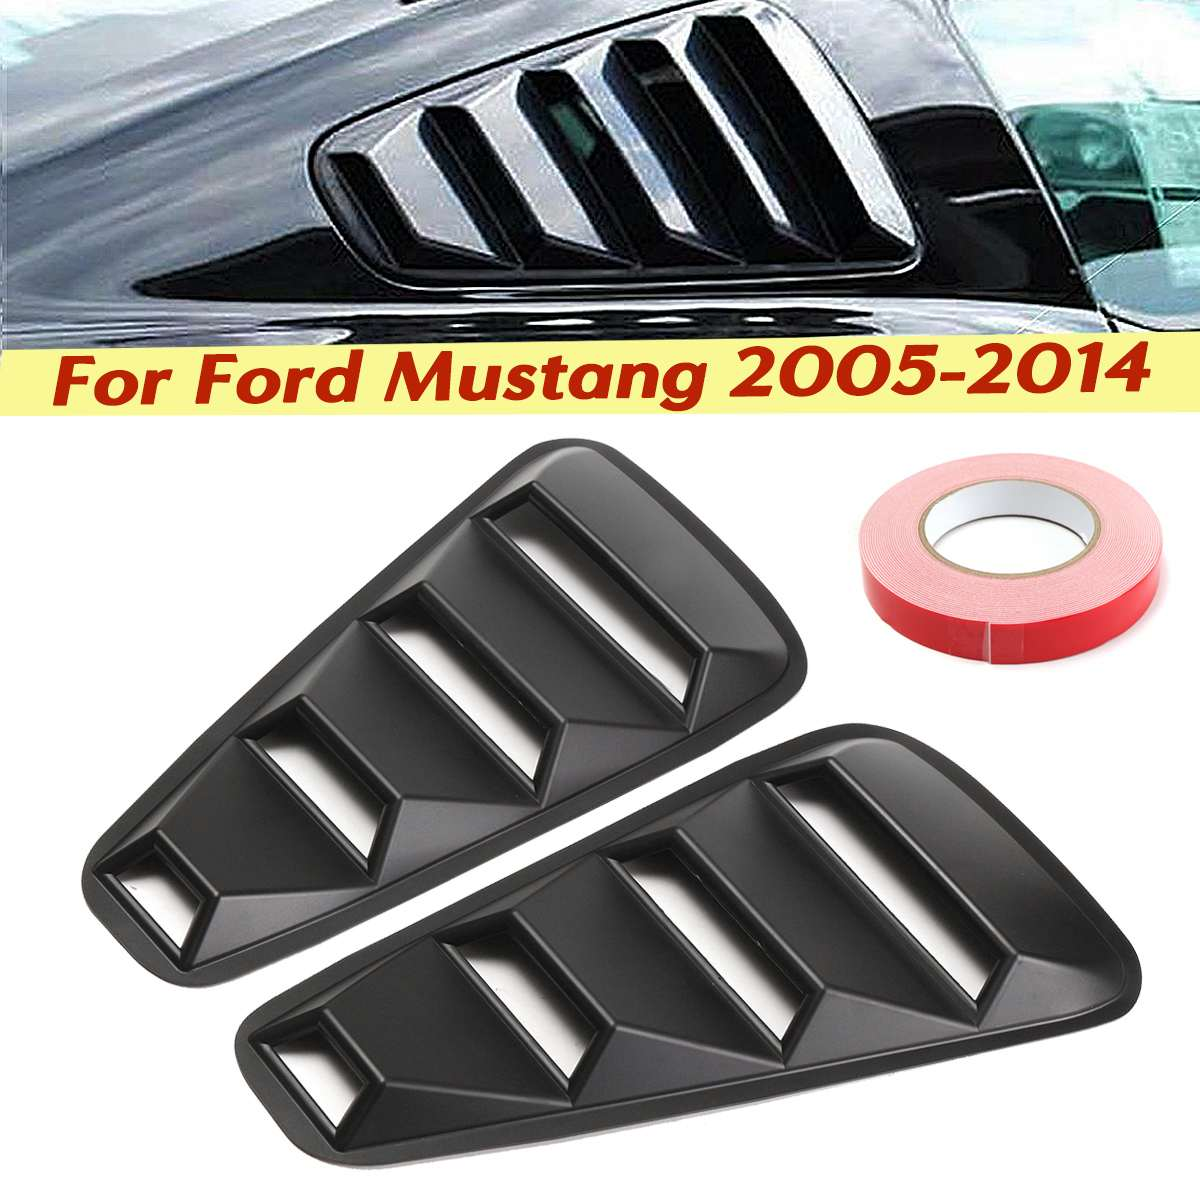 Pair 1/4 Quarter Side Window Louvers Scoop Cover Vent For Ford Mustang 2005 2006 2007 2008 2009 2010 2011 2012 2013 2014|Exterior Door Panels & Frames| |  - title=